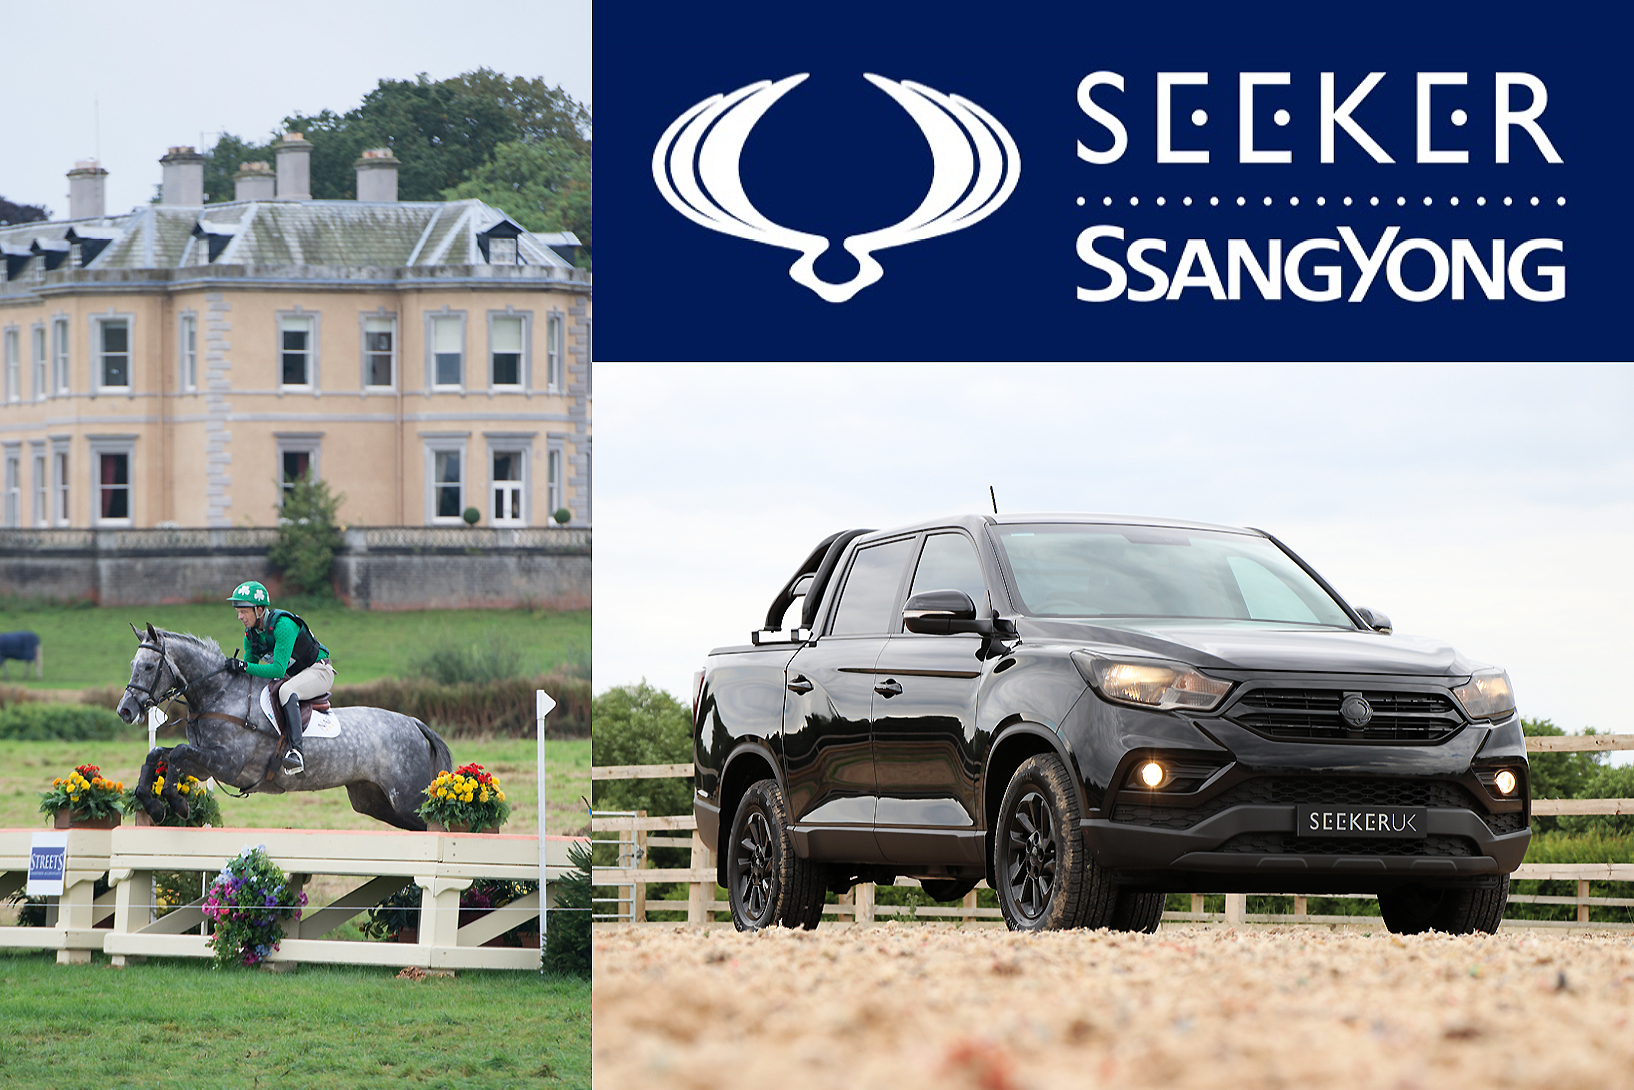 Seeker SsangYong to sponsor the Osberton International Horse Trials 2019 - book your test drive now!